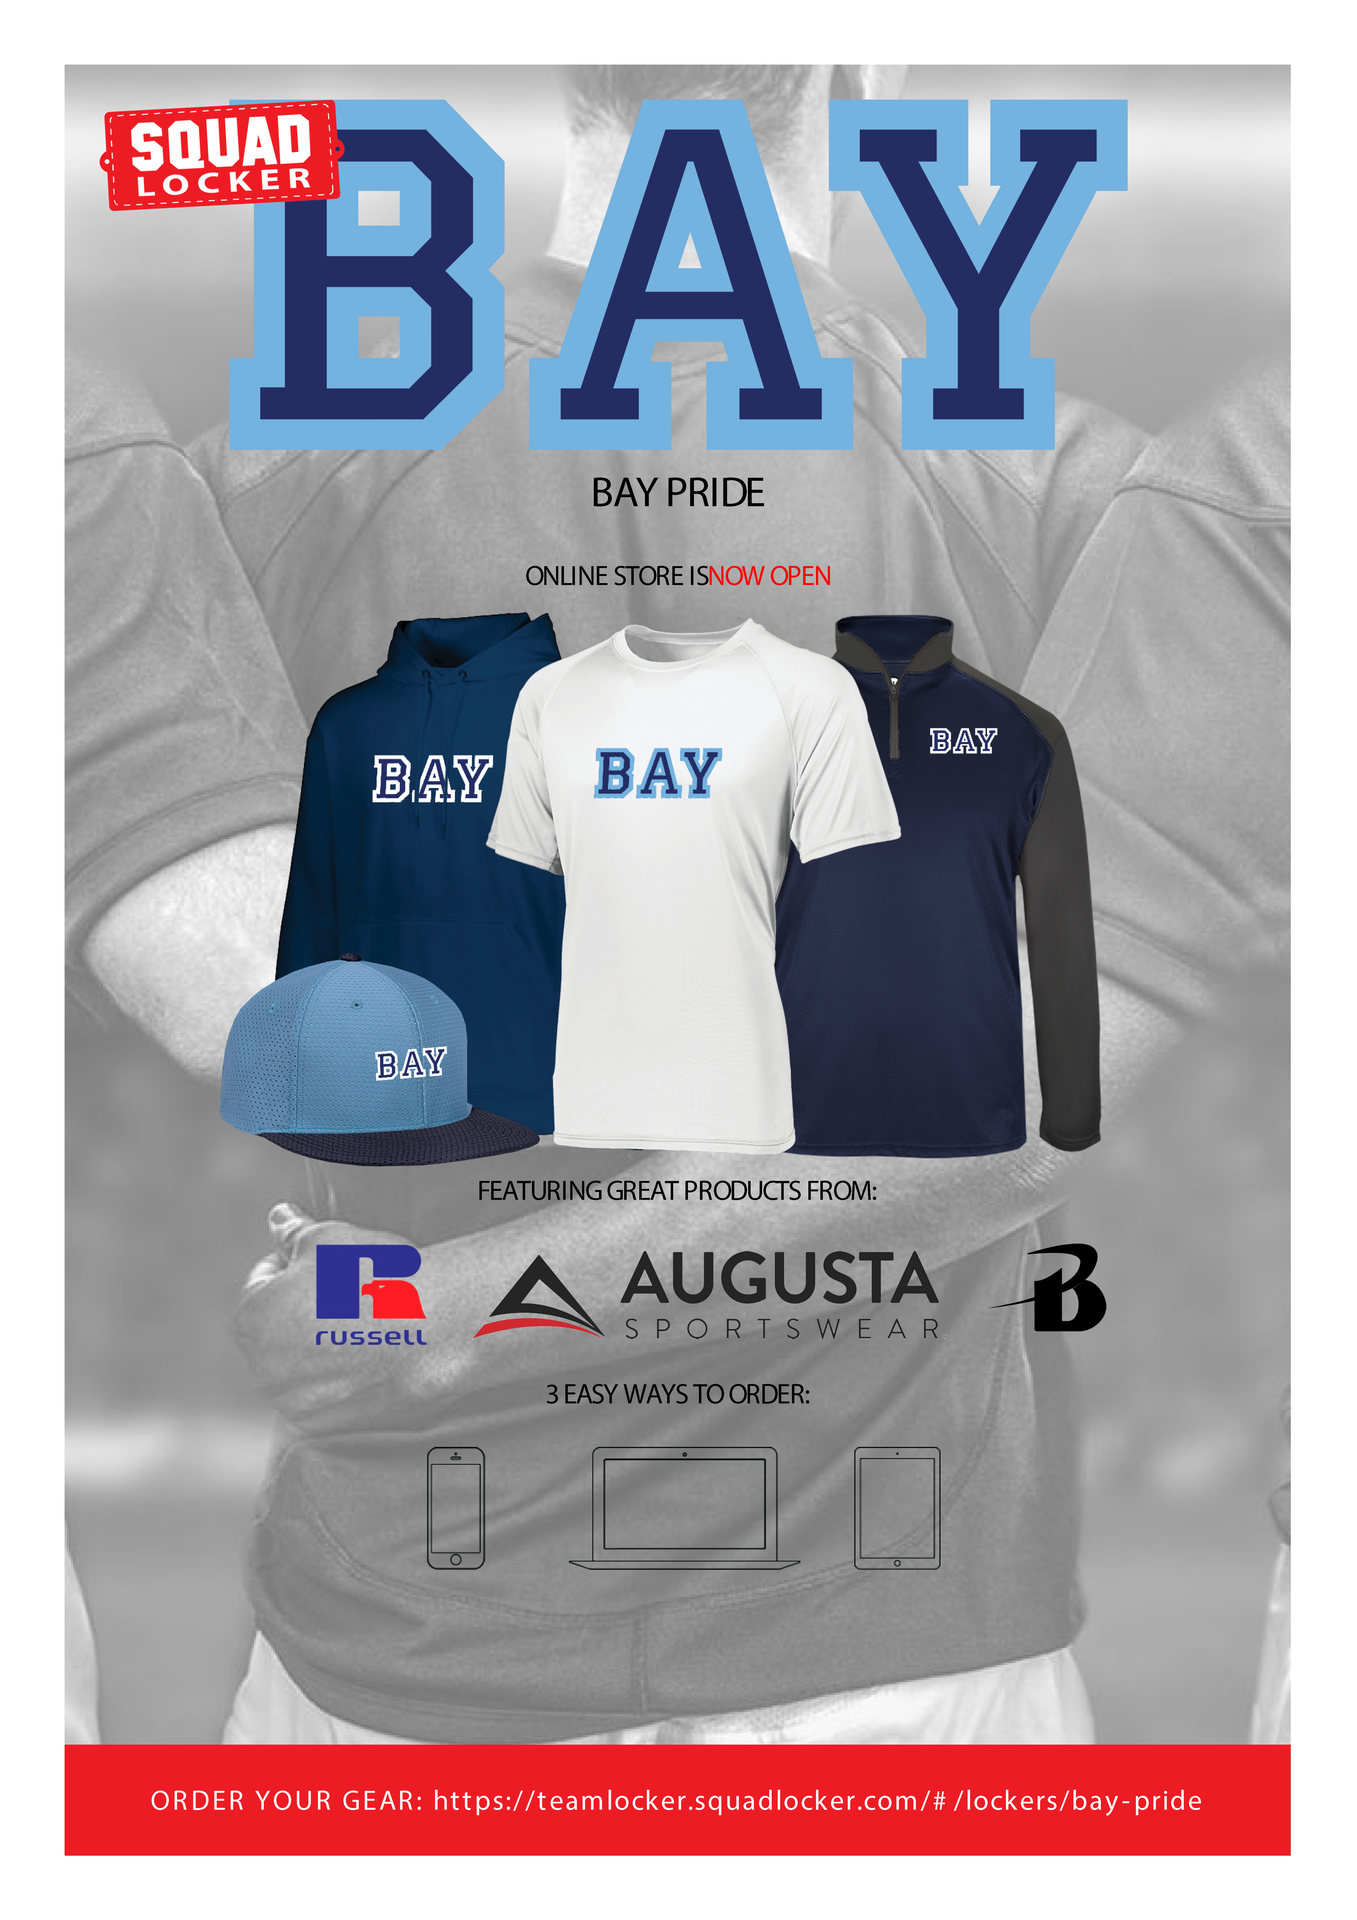 Order Your Bay Gear Today!